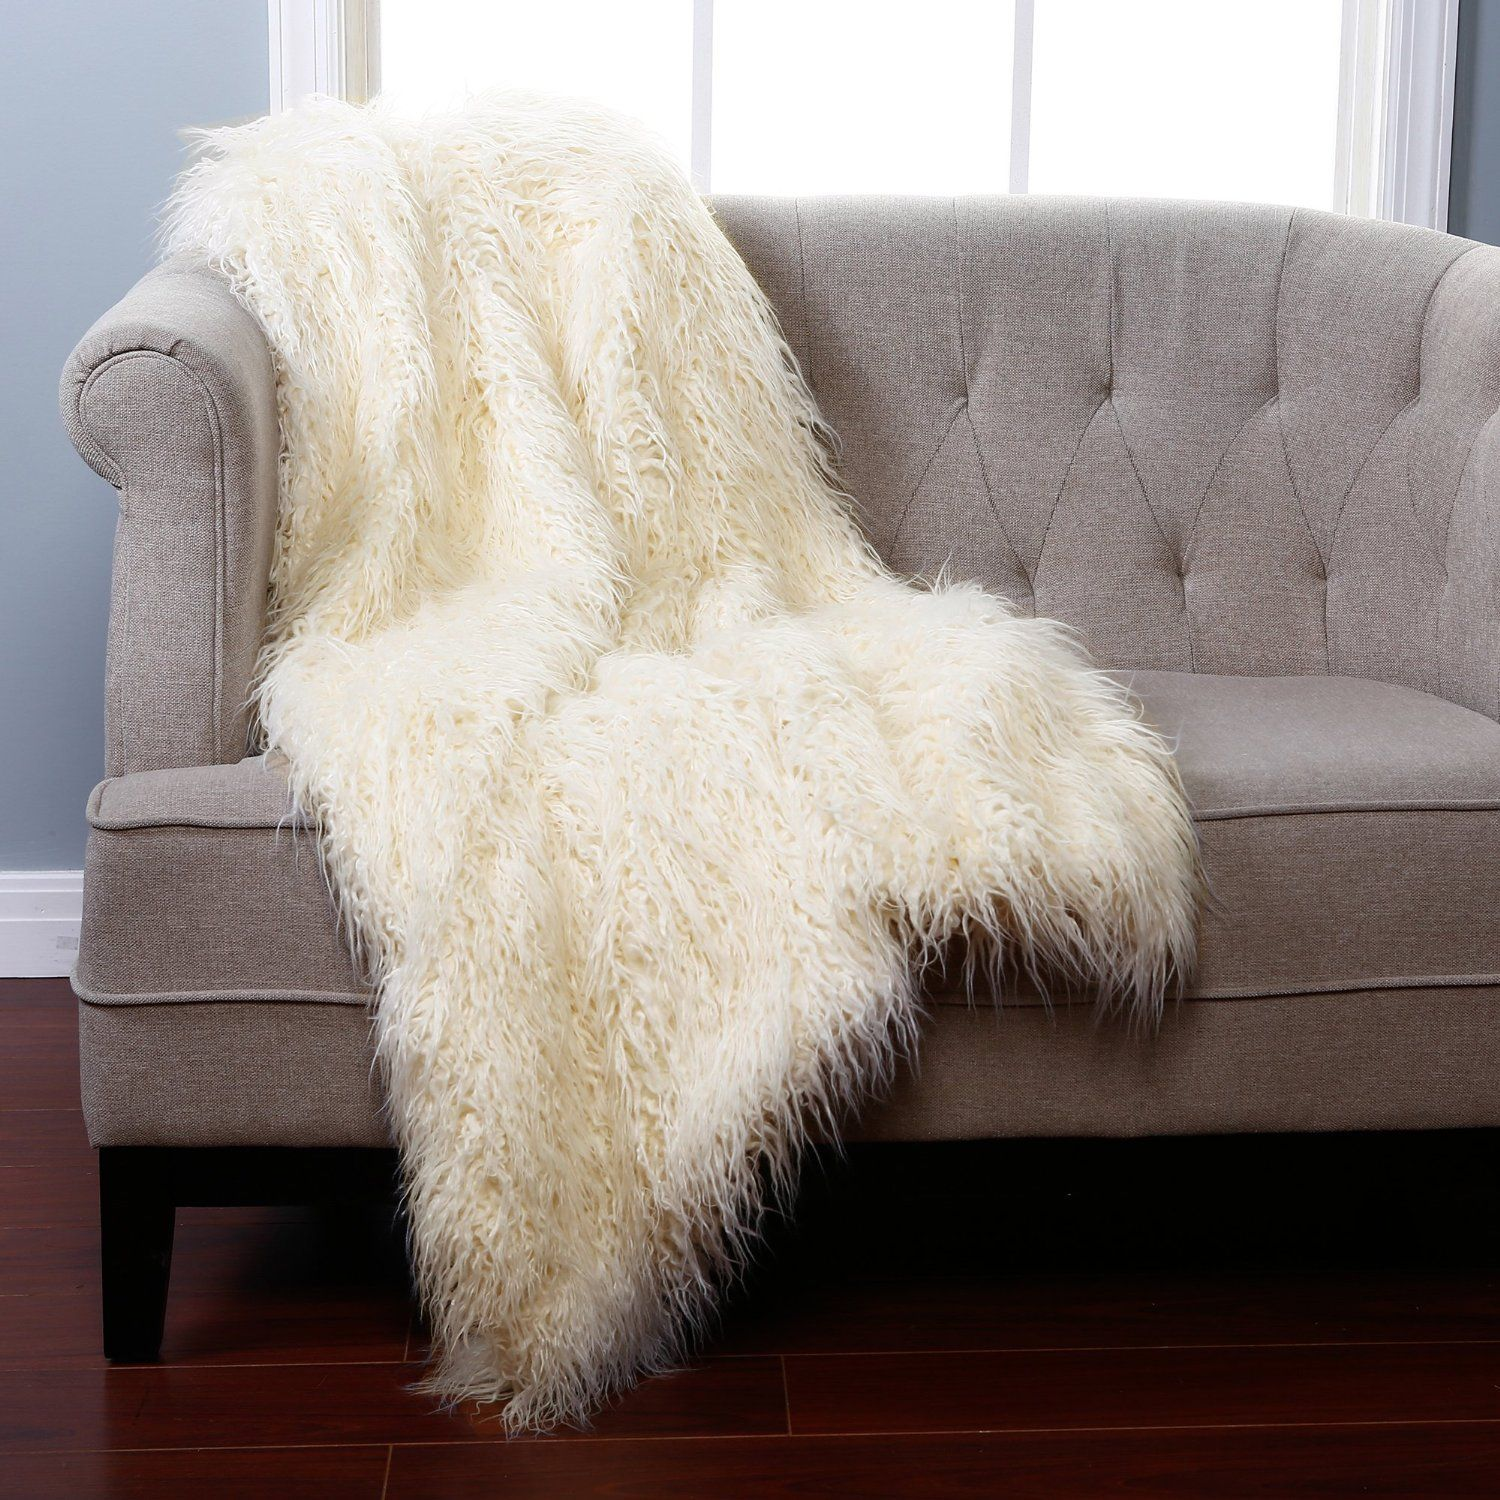 Amazon Com Ivory Mongolian Lamb Faux Fur Throw Blanket